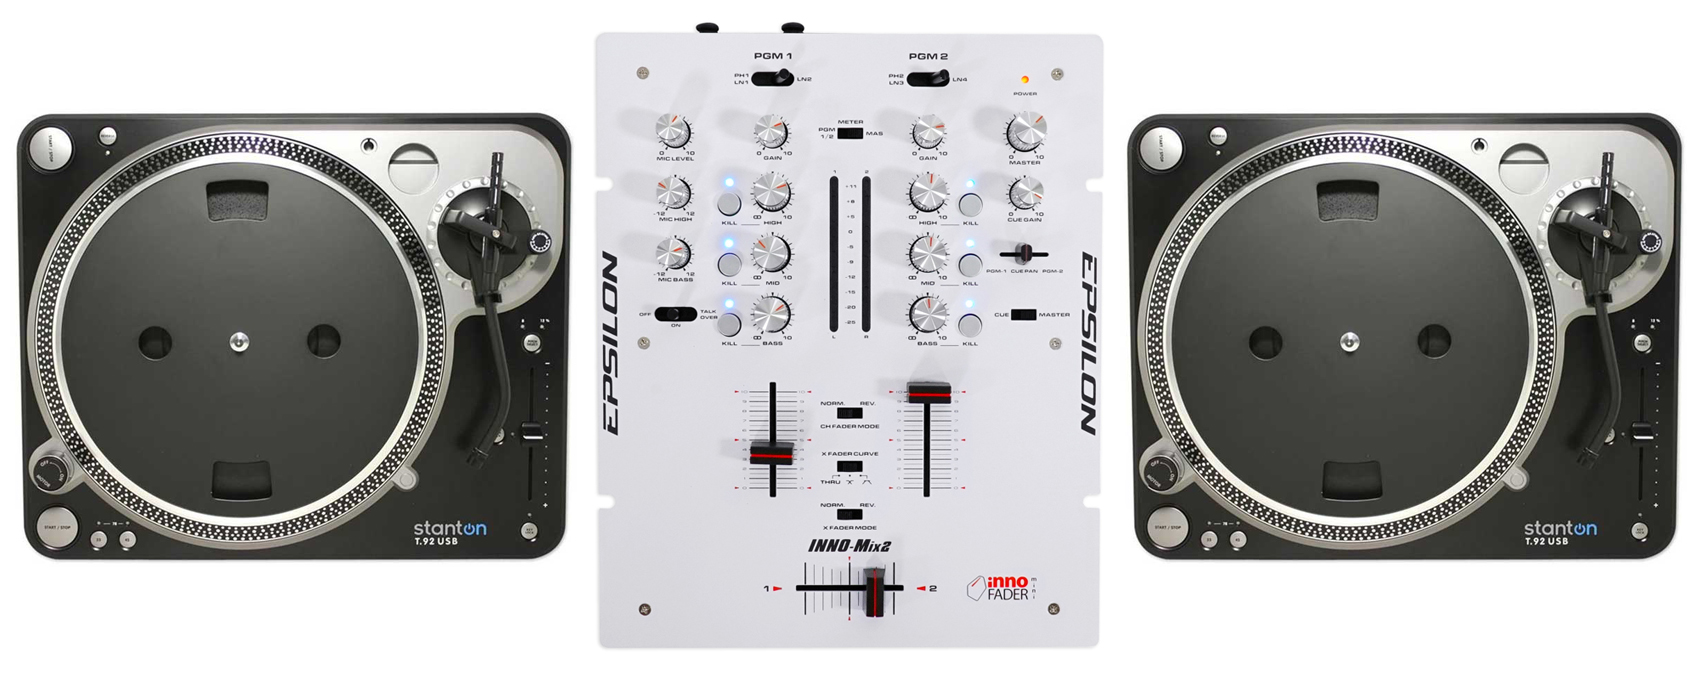 Pair Stanton T.92 USB Direct Drive Turntables T.92USB T92+DJ Scratch Mixer by Stanton